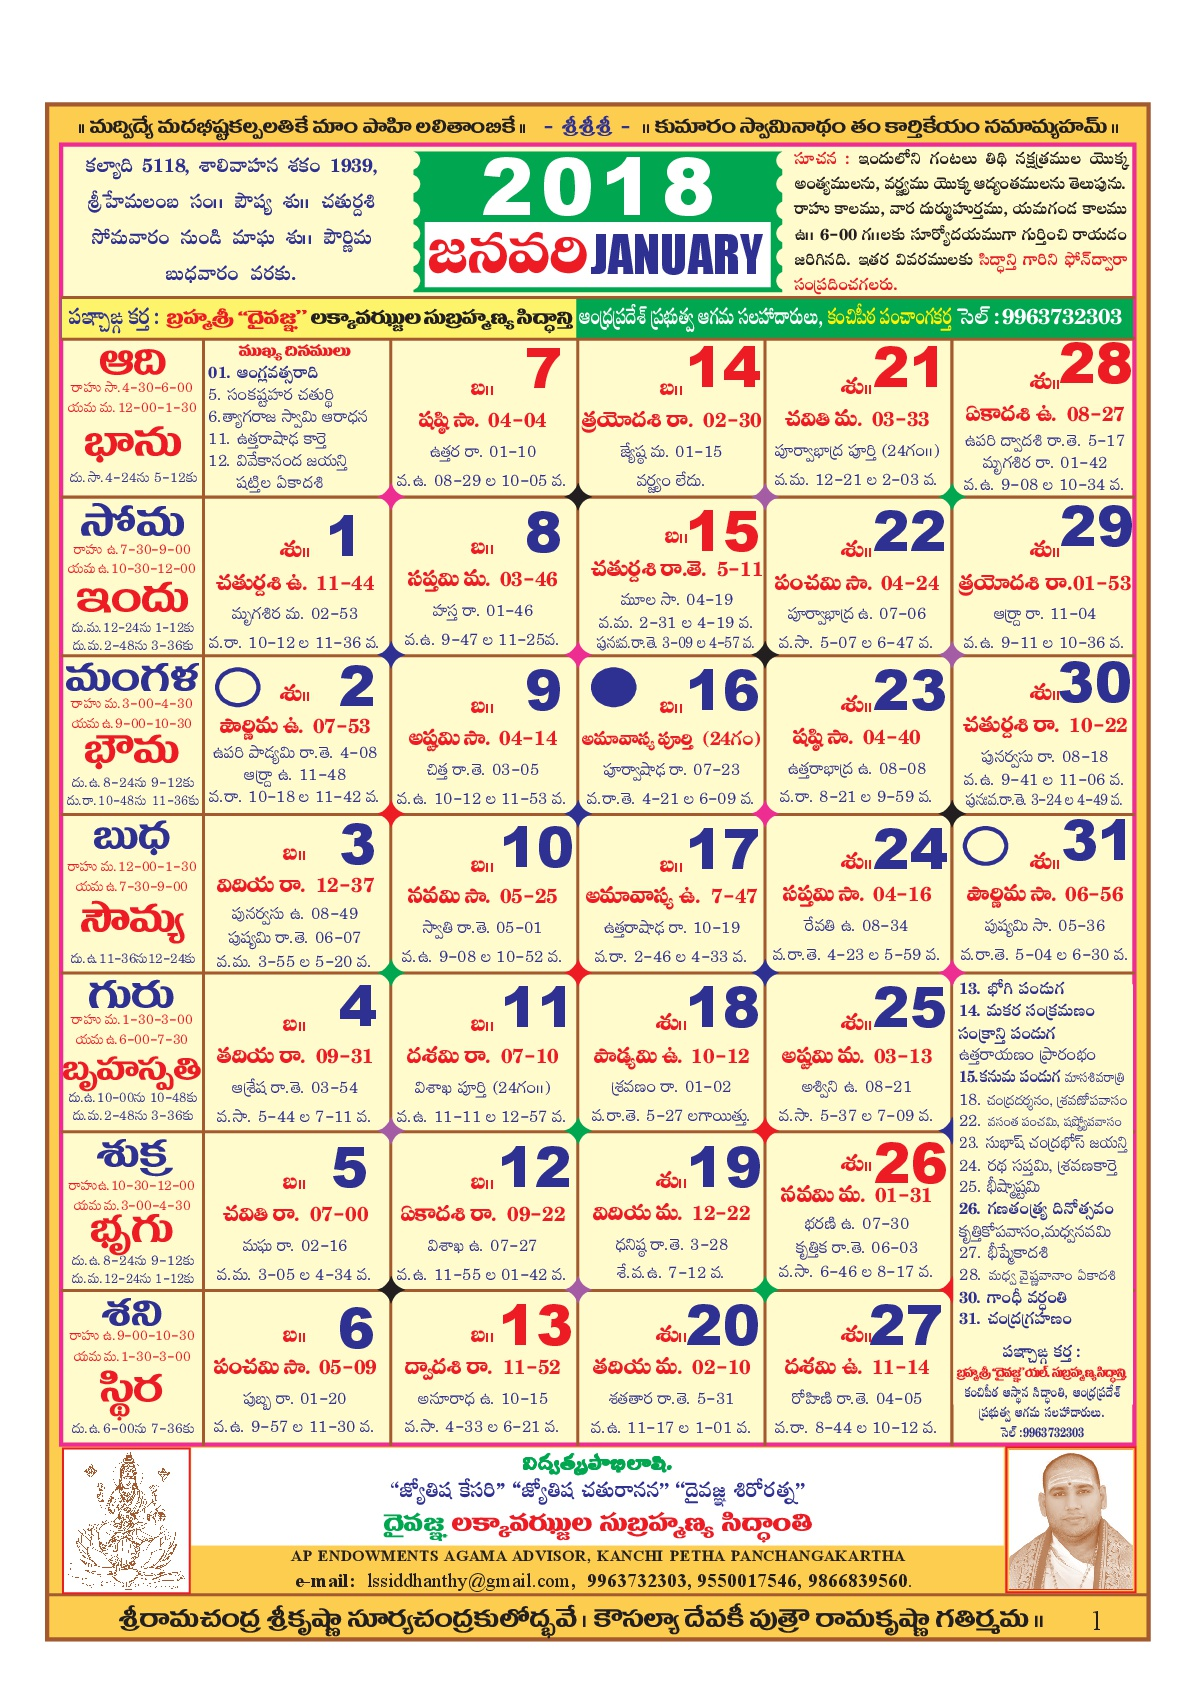 Calendar In Telugu : Telugu calendar with tithi festivals holidays list